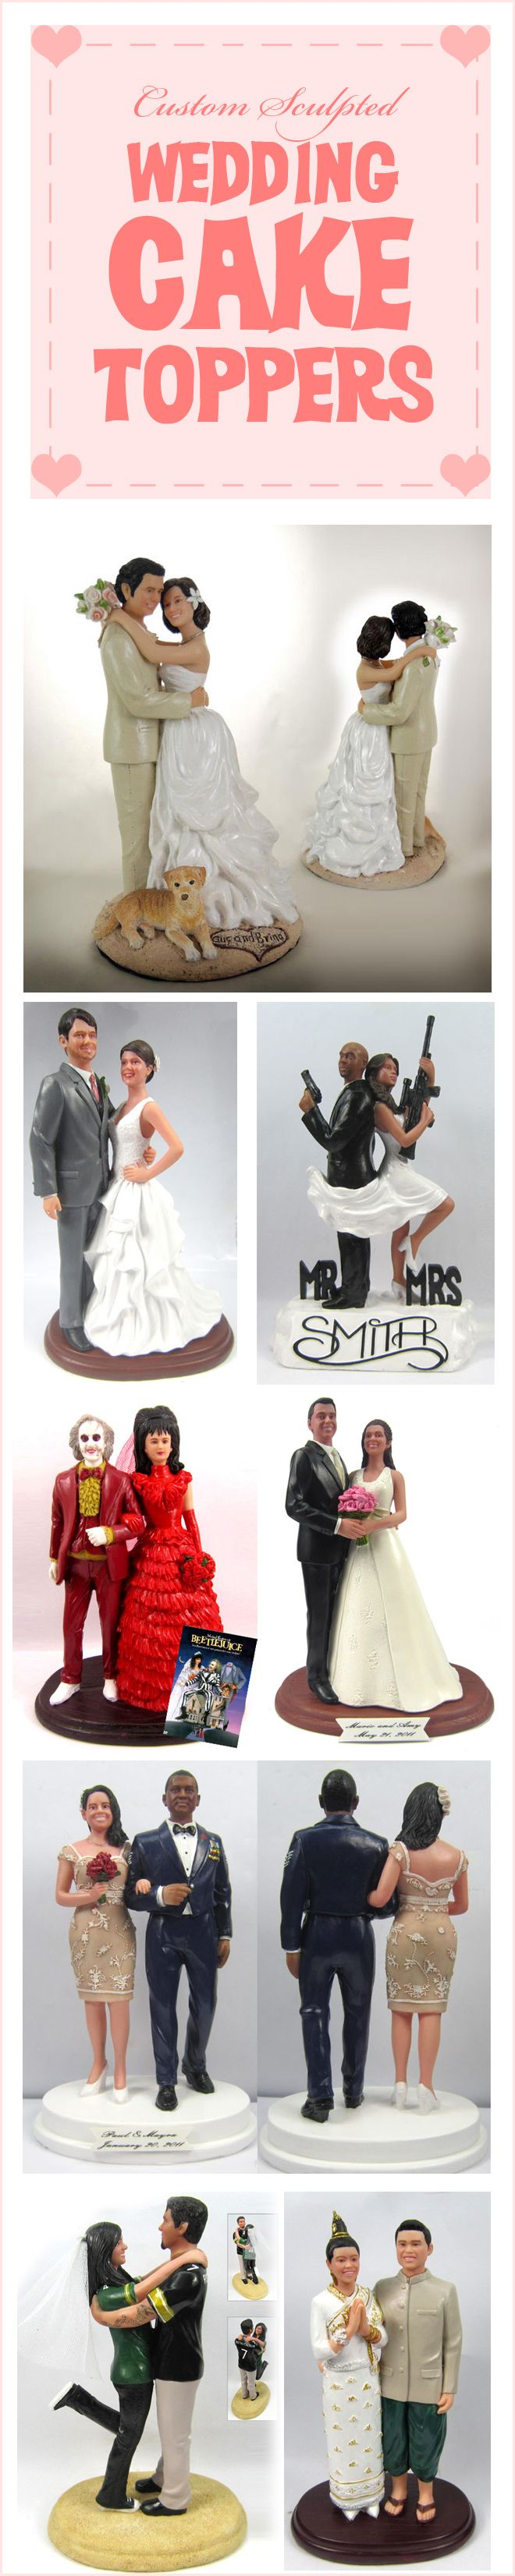 Cake toppers that look like the bride and groom are SOOO awesome!